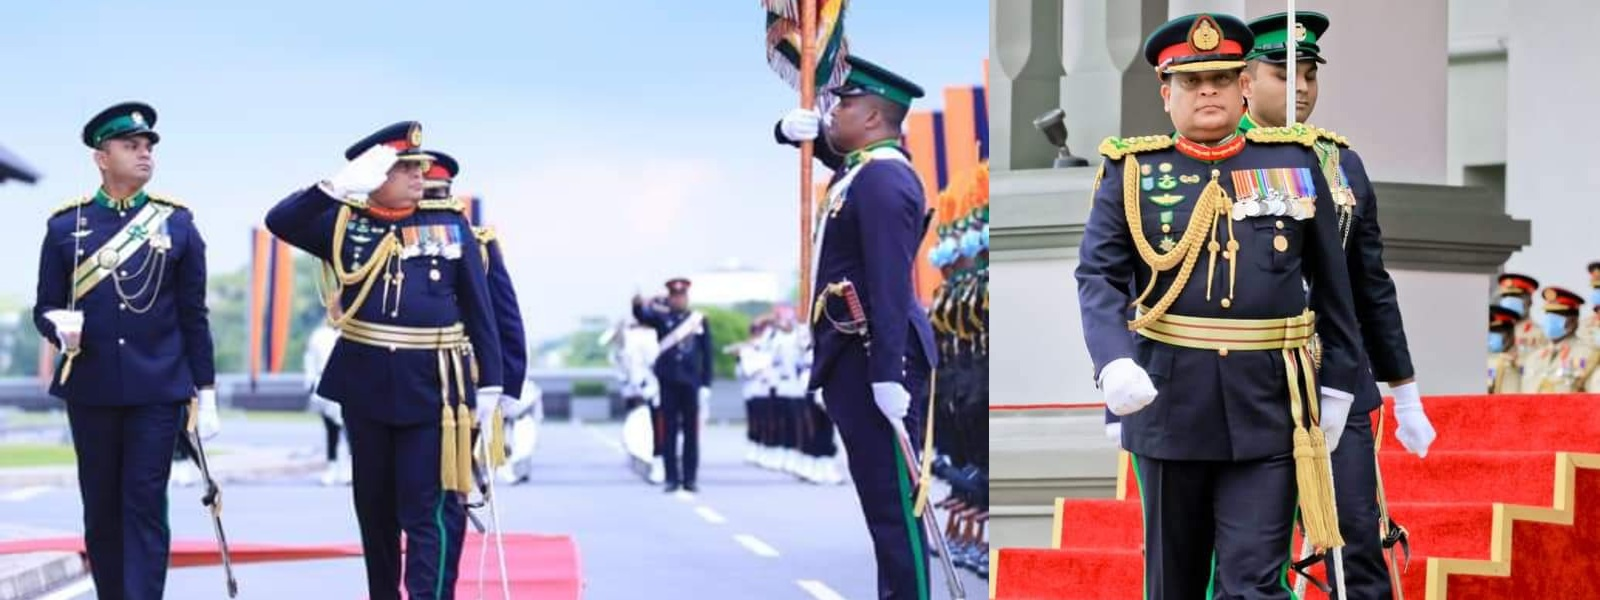 GENERAL SHAVENDRA SILVA HONOURED WITH MILITARY SALUTE